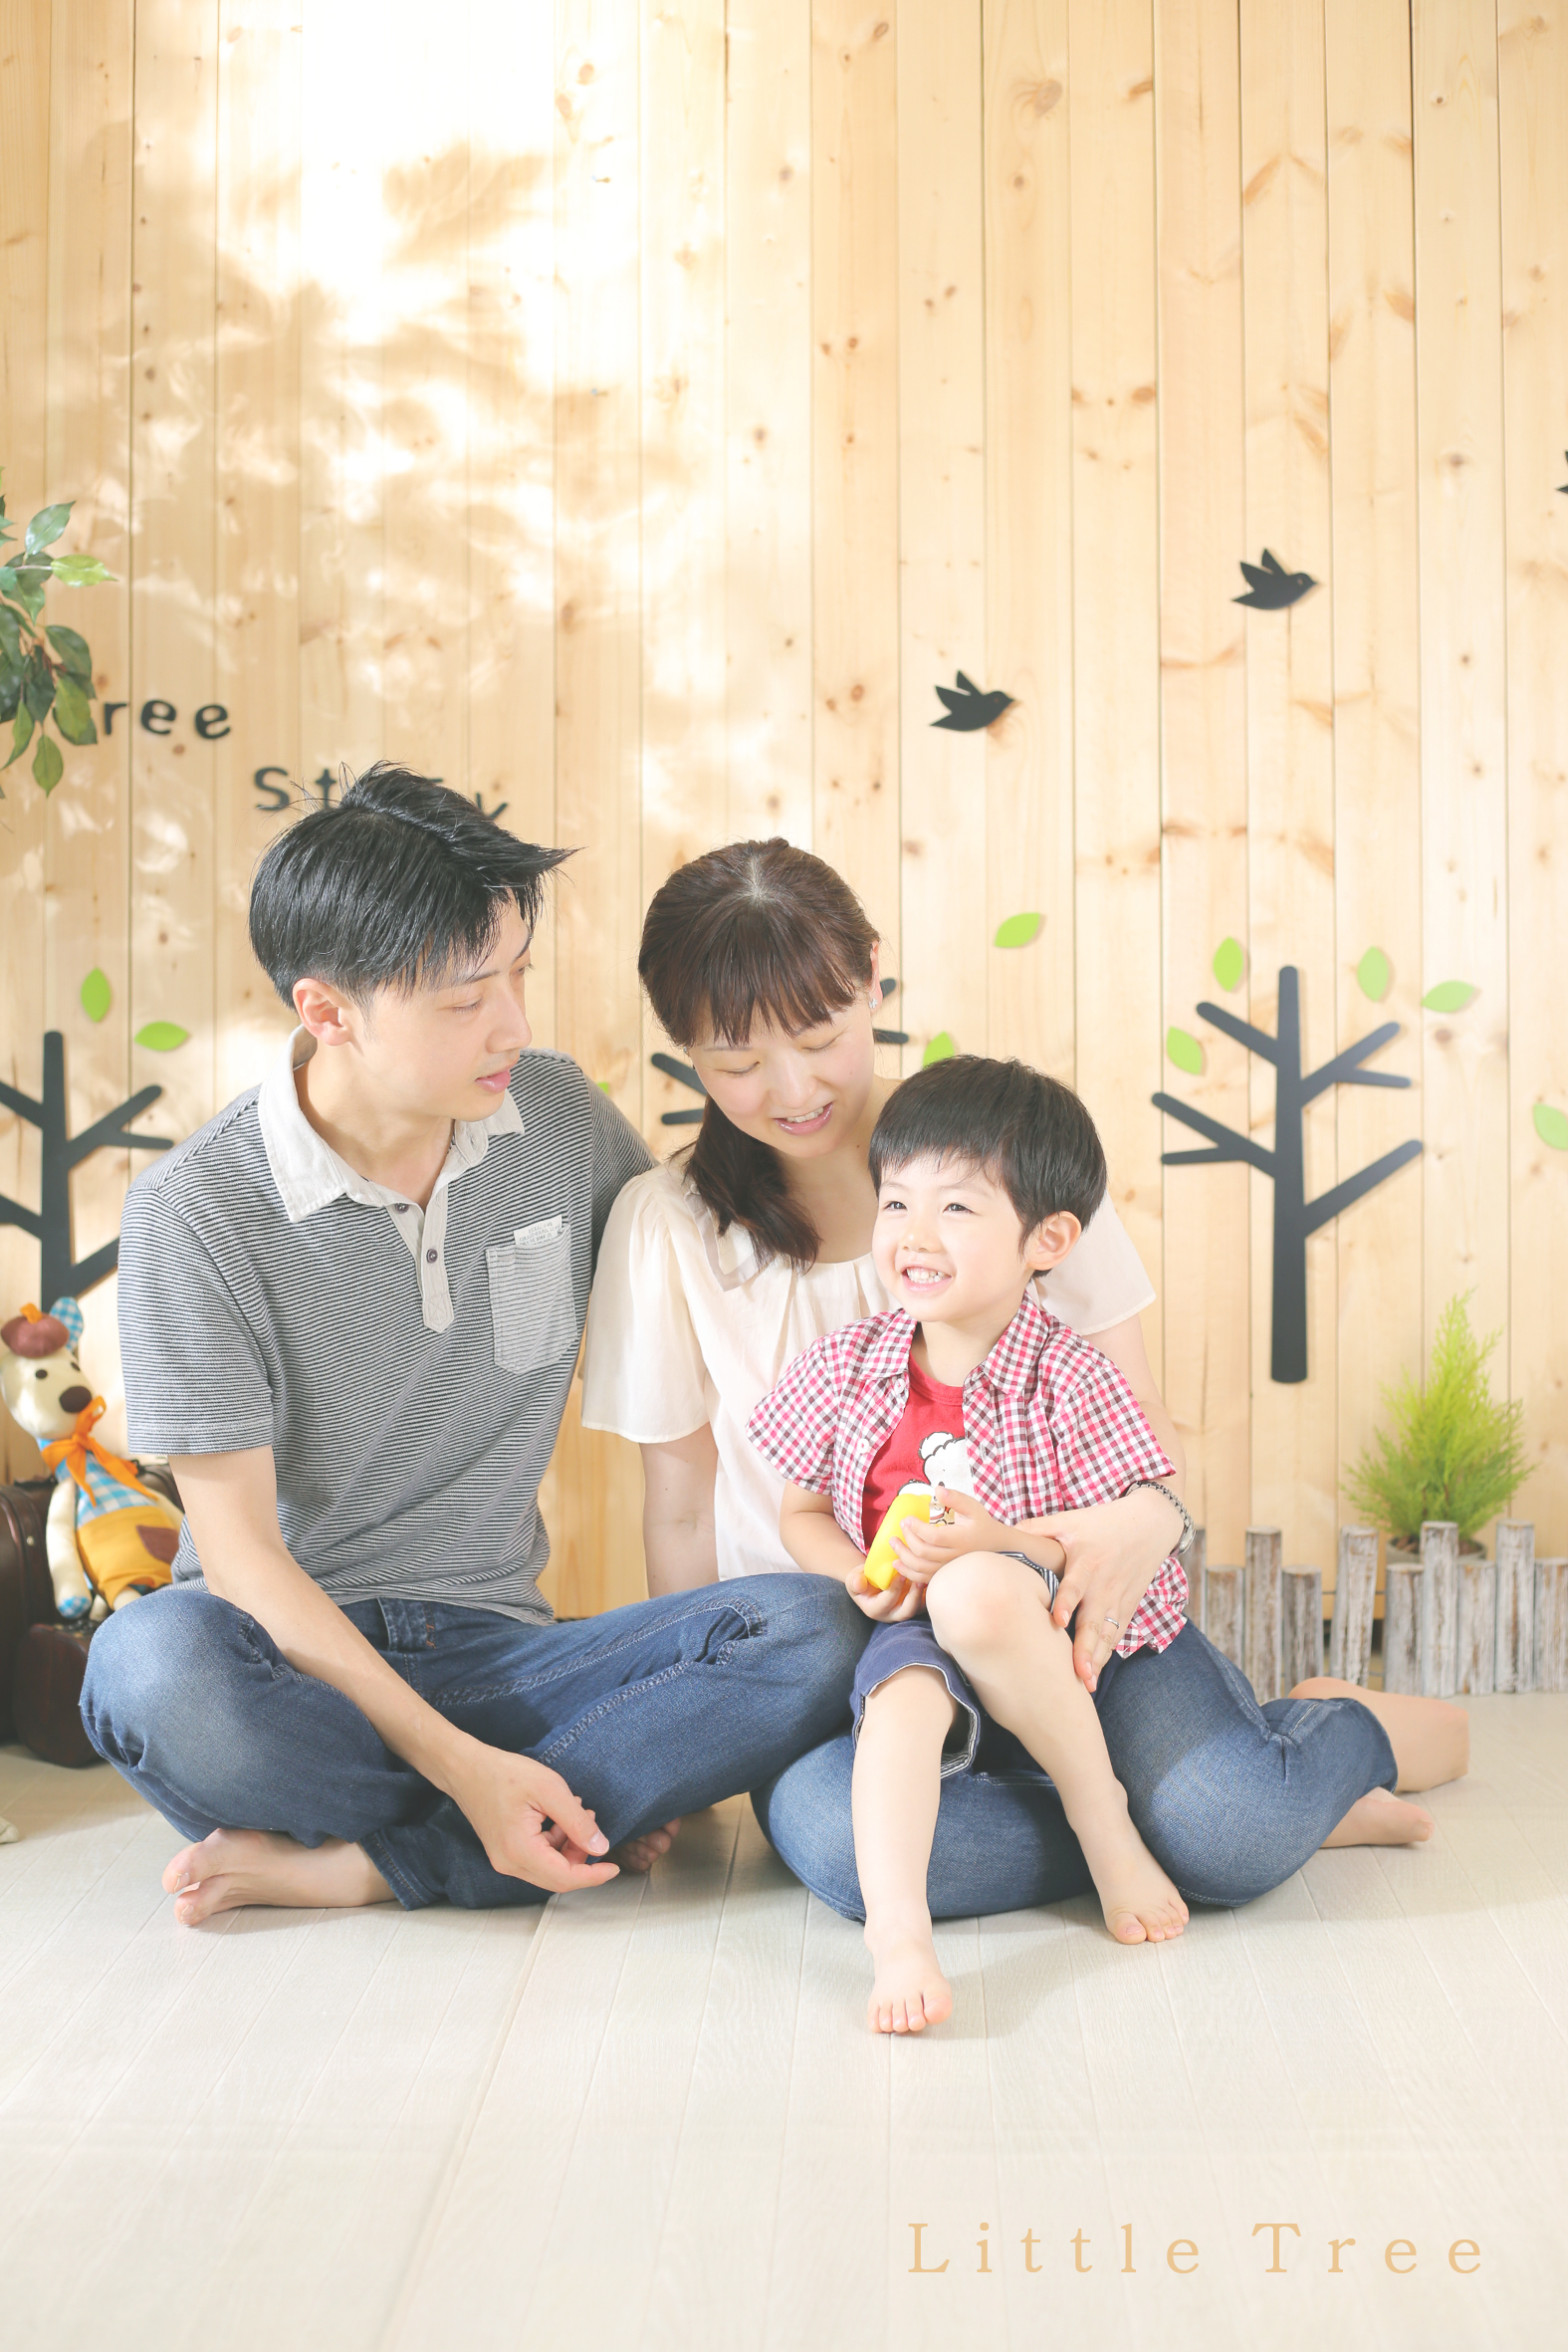 littletree family37.jpg